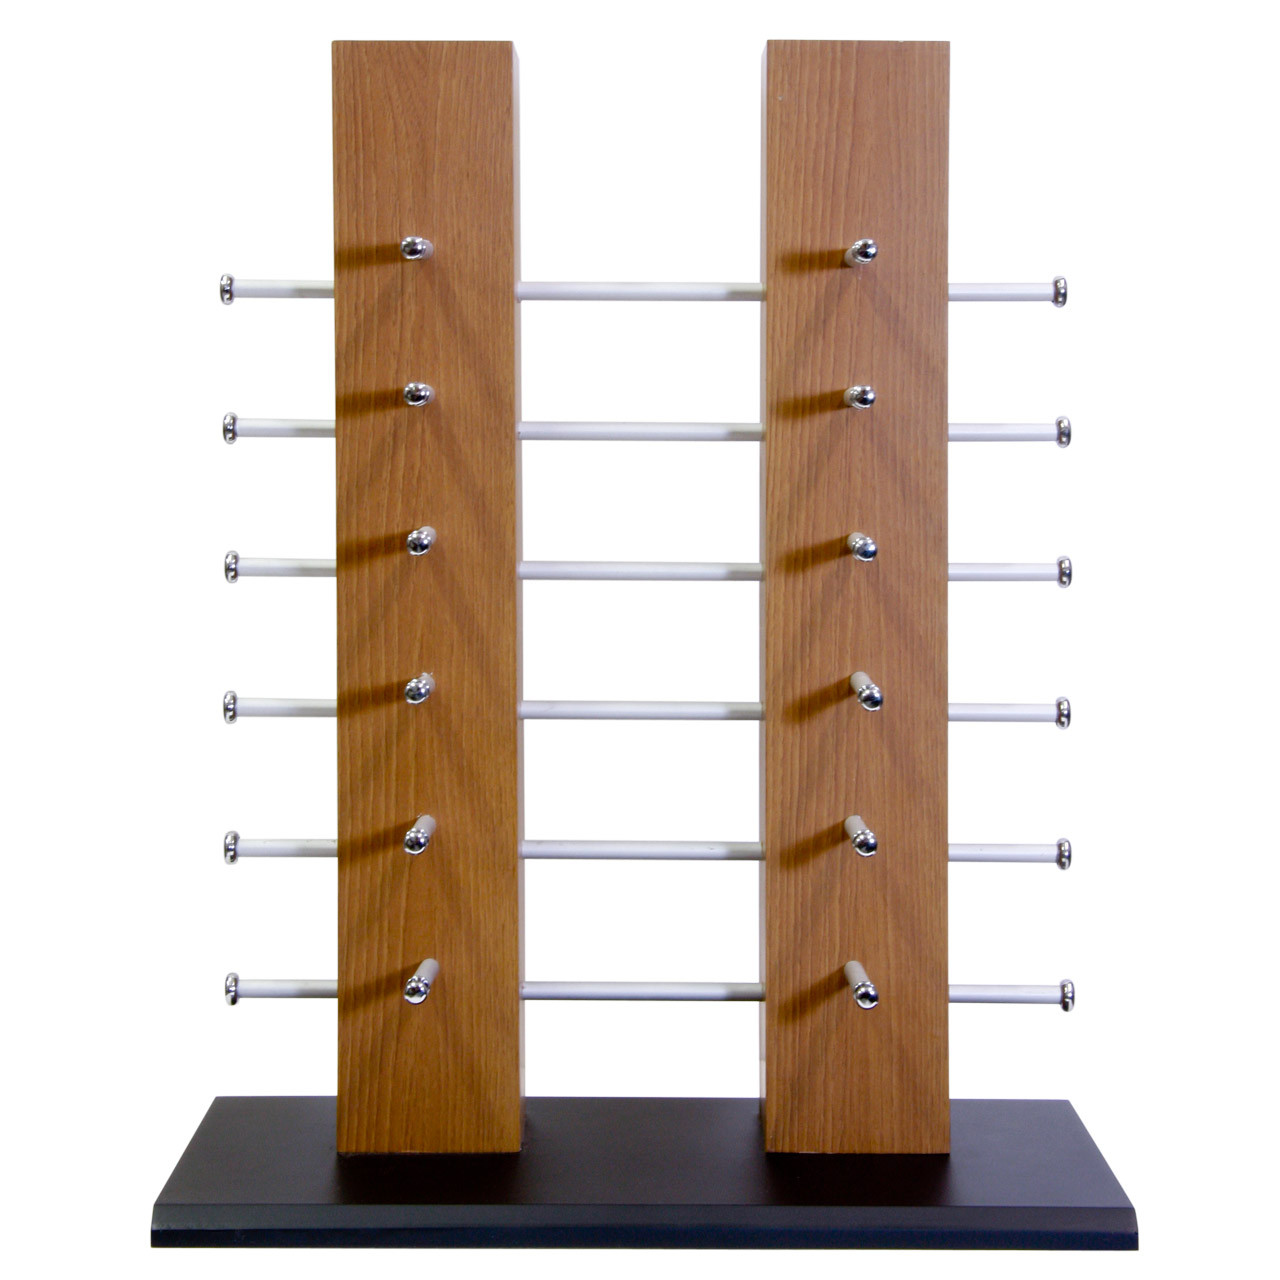 bf801a4d38b4 Sunglasses Display Rack For Sale « Heritage Malta